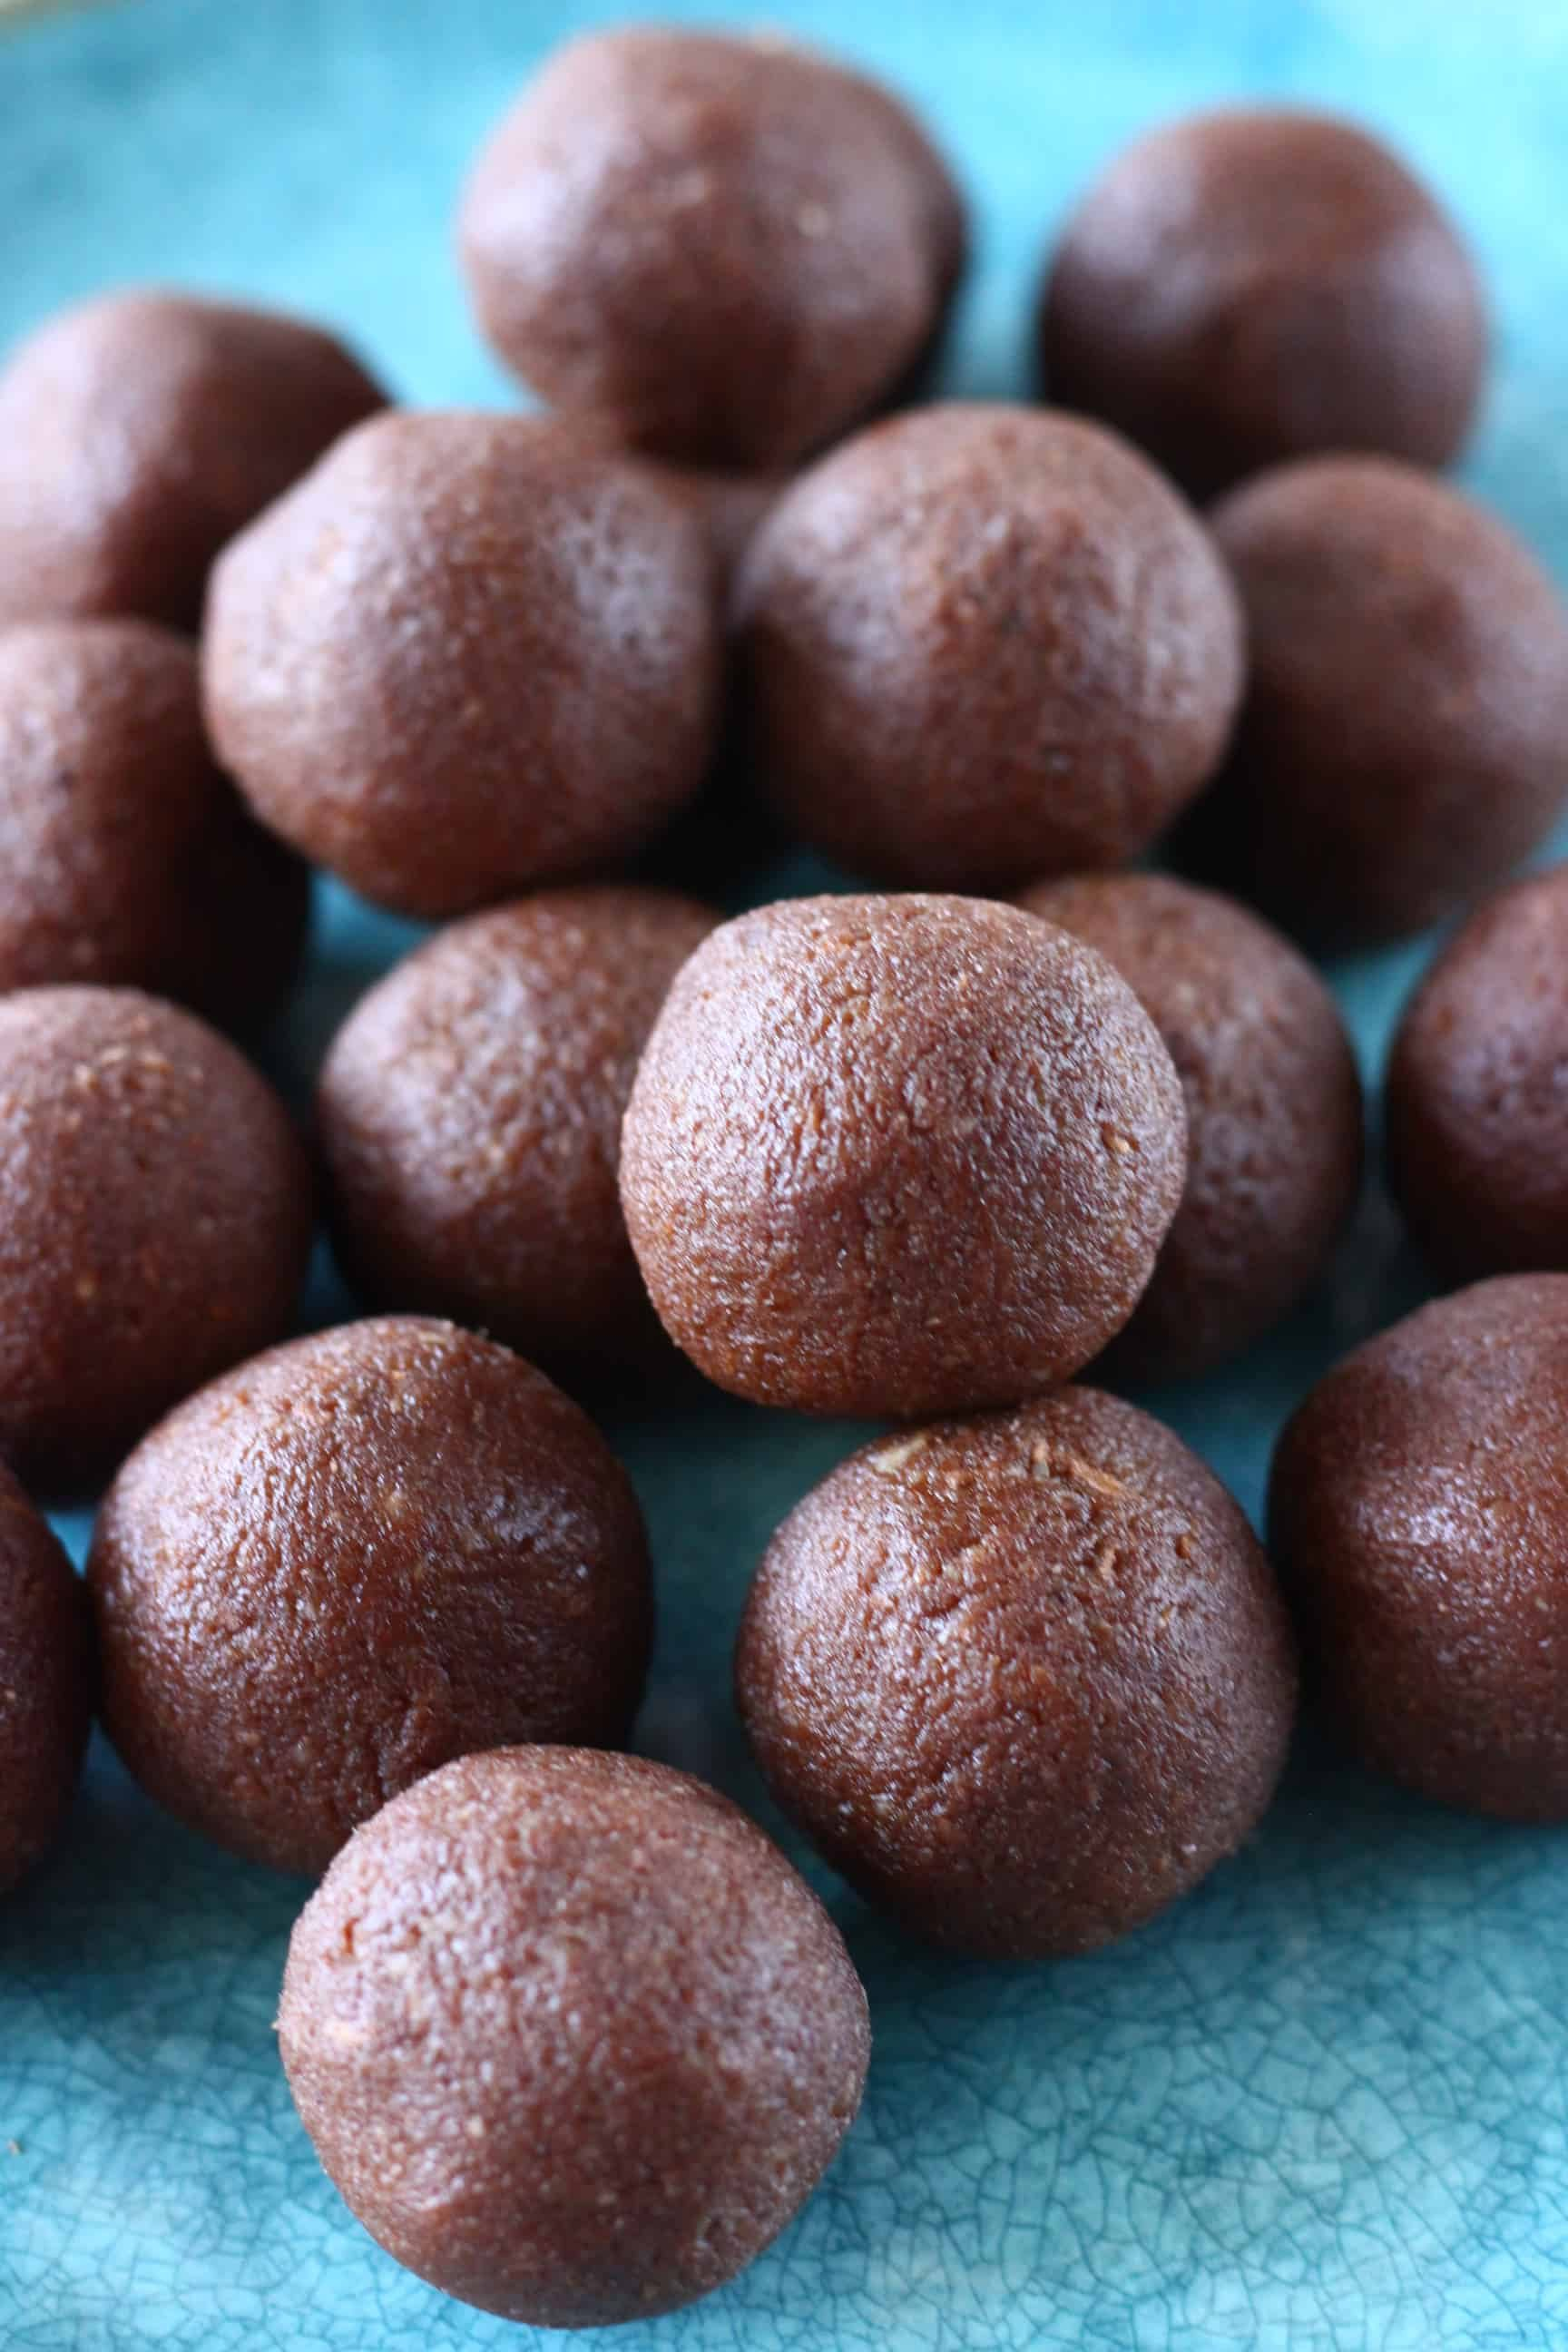 A pile of chocolate vegan protein balls on a blue plate